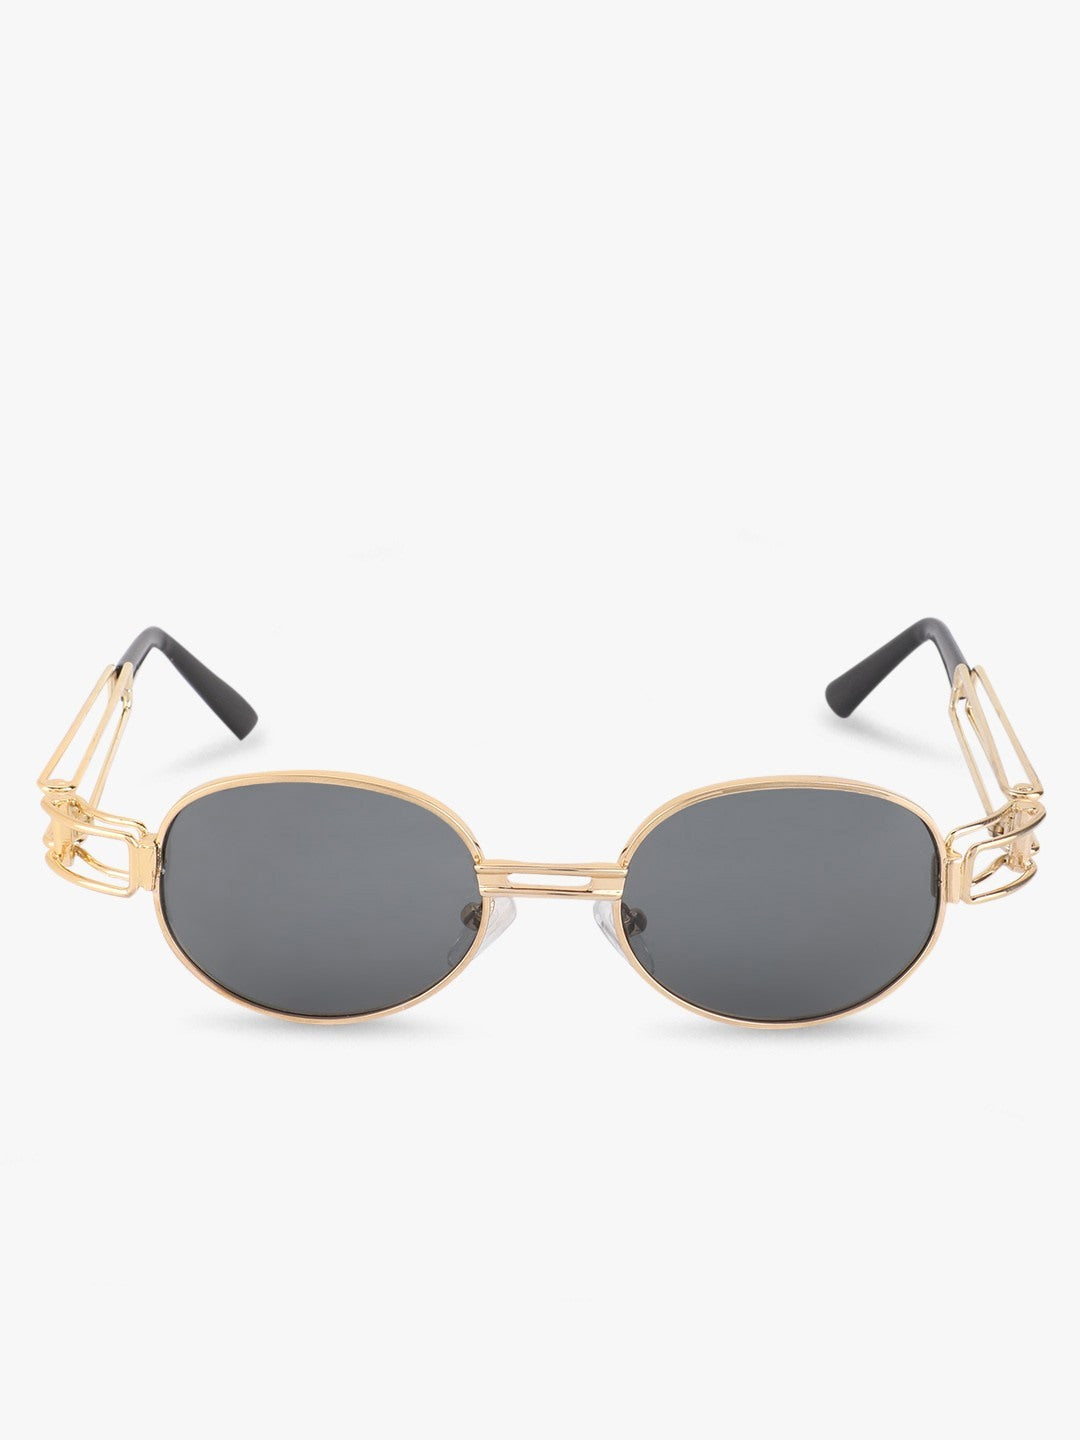 d2aa8012f8f Black Sunglasses With Gold Frames. Tap to expand